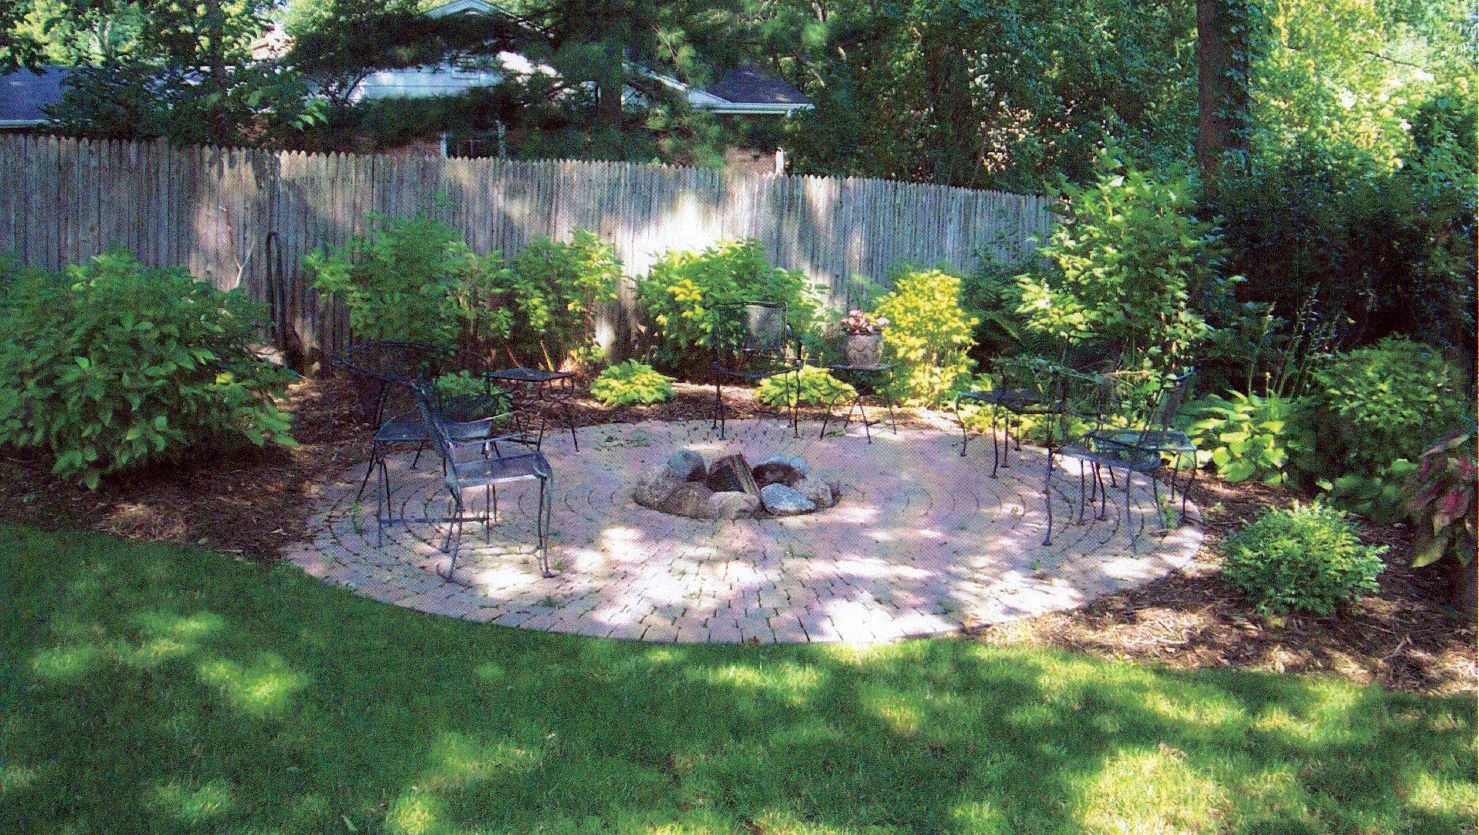 Backyard Landscaping Design Ideas backyard landscaping design ideas High Resolution Image Hall Design Backyard Designs Backyard Landscape Re Marshall Nursery Backyard Ideas Home Depot Diy Backyard Designs And Hall